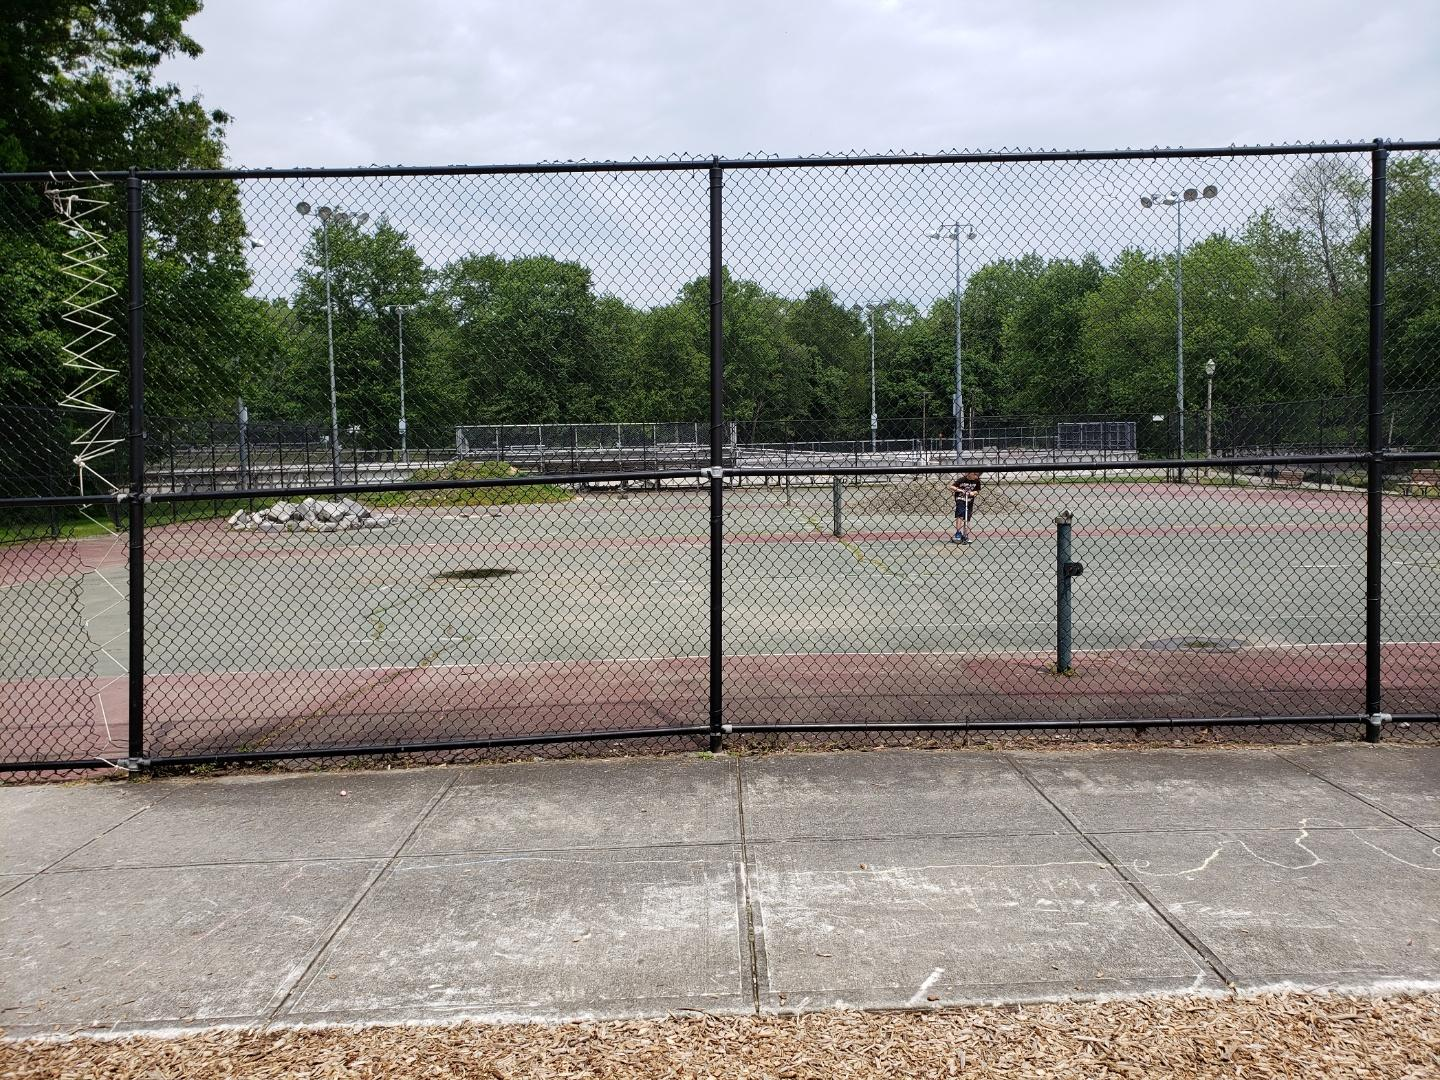 News 12: Residents: Yorktown parks are unusable and dangerous